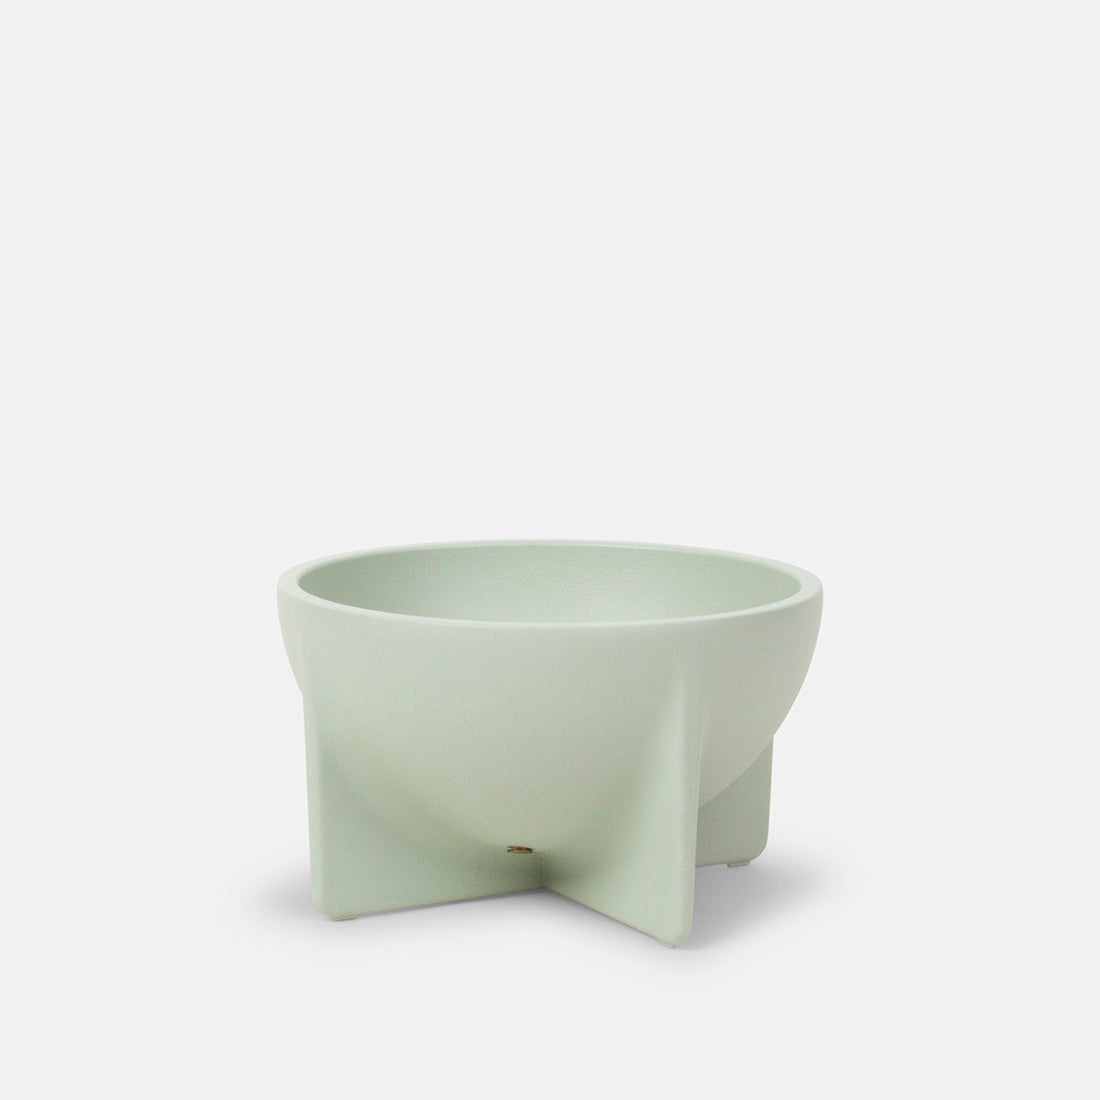 Small Standing Bowl in Sage